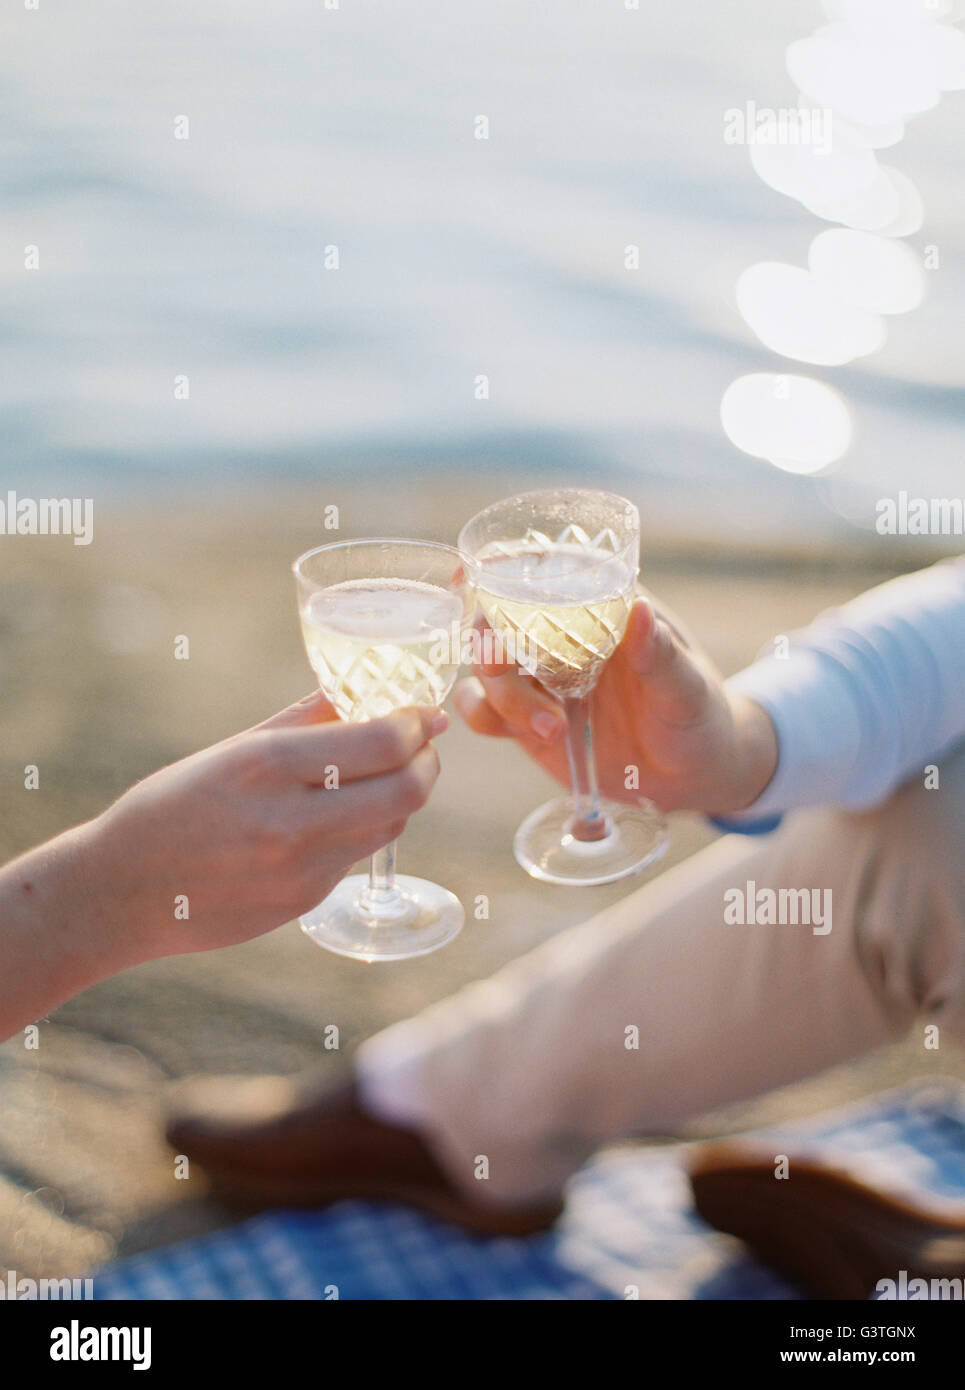 Sweden, Bohuslan, Fjallbacka, Couple toasting with glasses of champagne on sandy beach - Stock Image